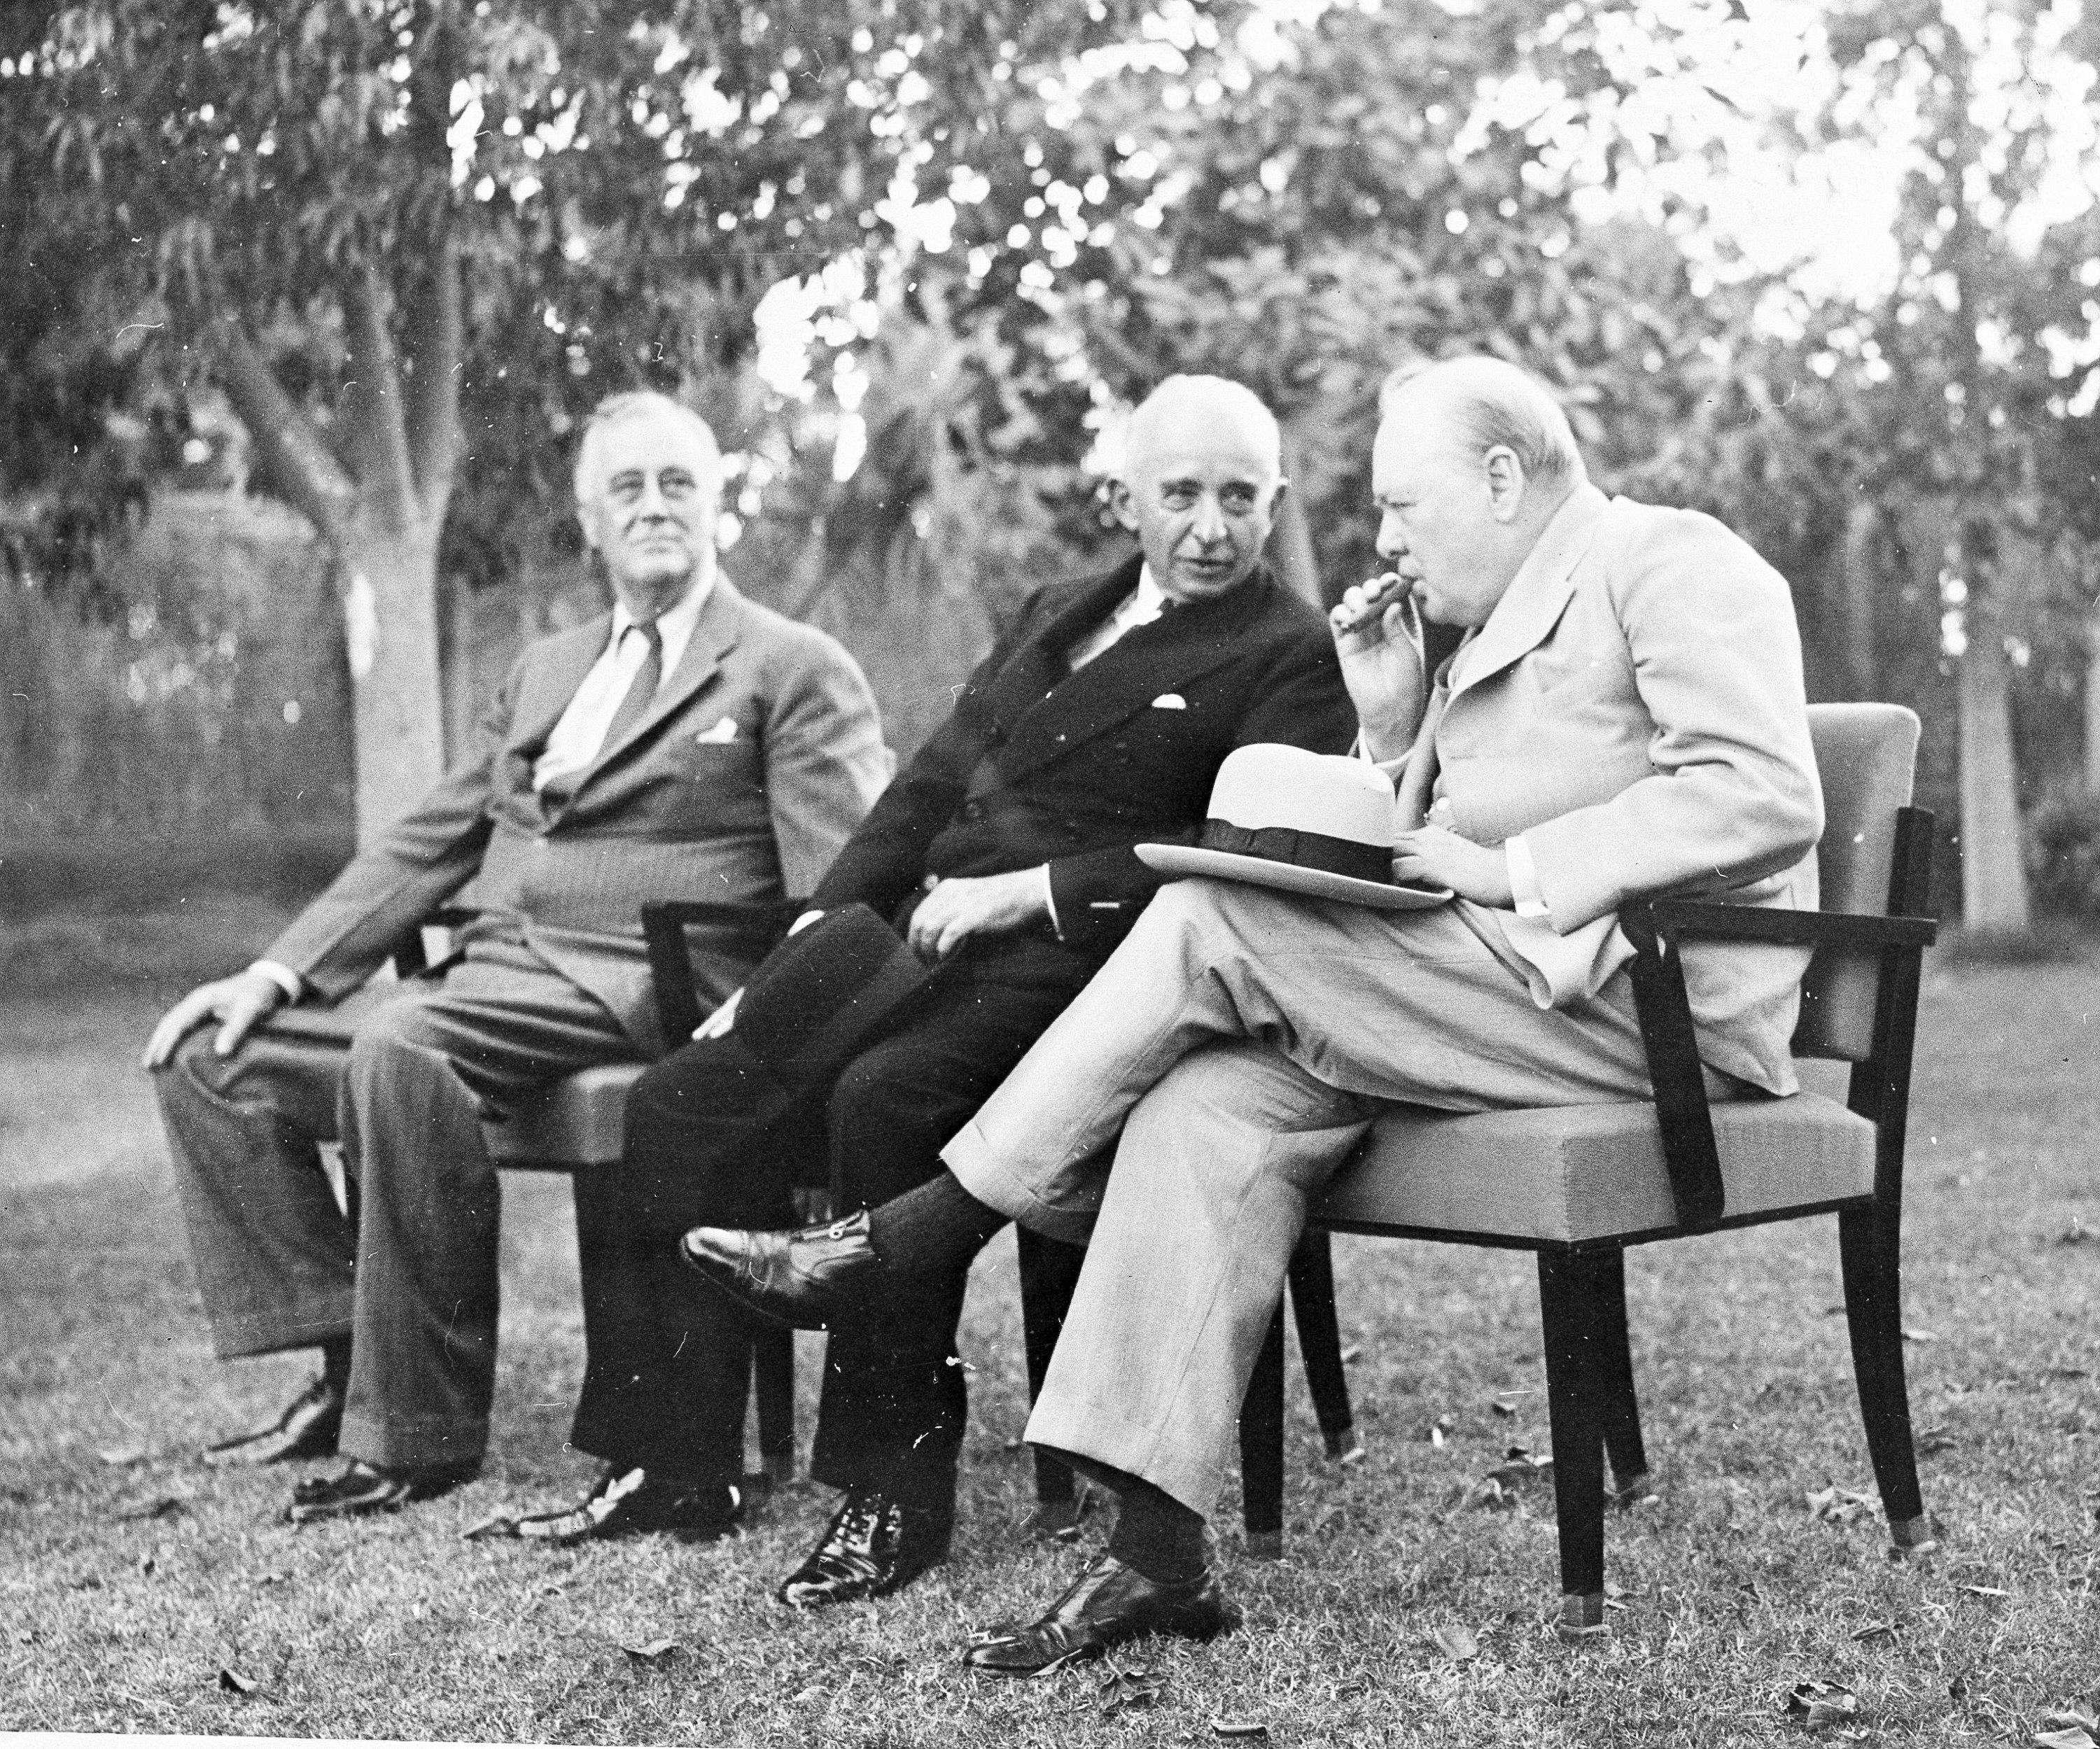 In this photo provided by the U.S. Army Air Force, Turkish President Ismet Inönü (C), poses with President Franklin D. Roosevel (L), and Prime Minister Winston Churchill during an interlude in their conference at Cairo, Egypt, Dec. 4, 1943. (AP Photo)